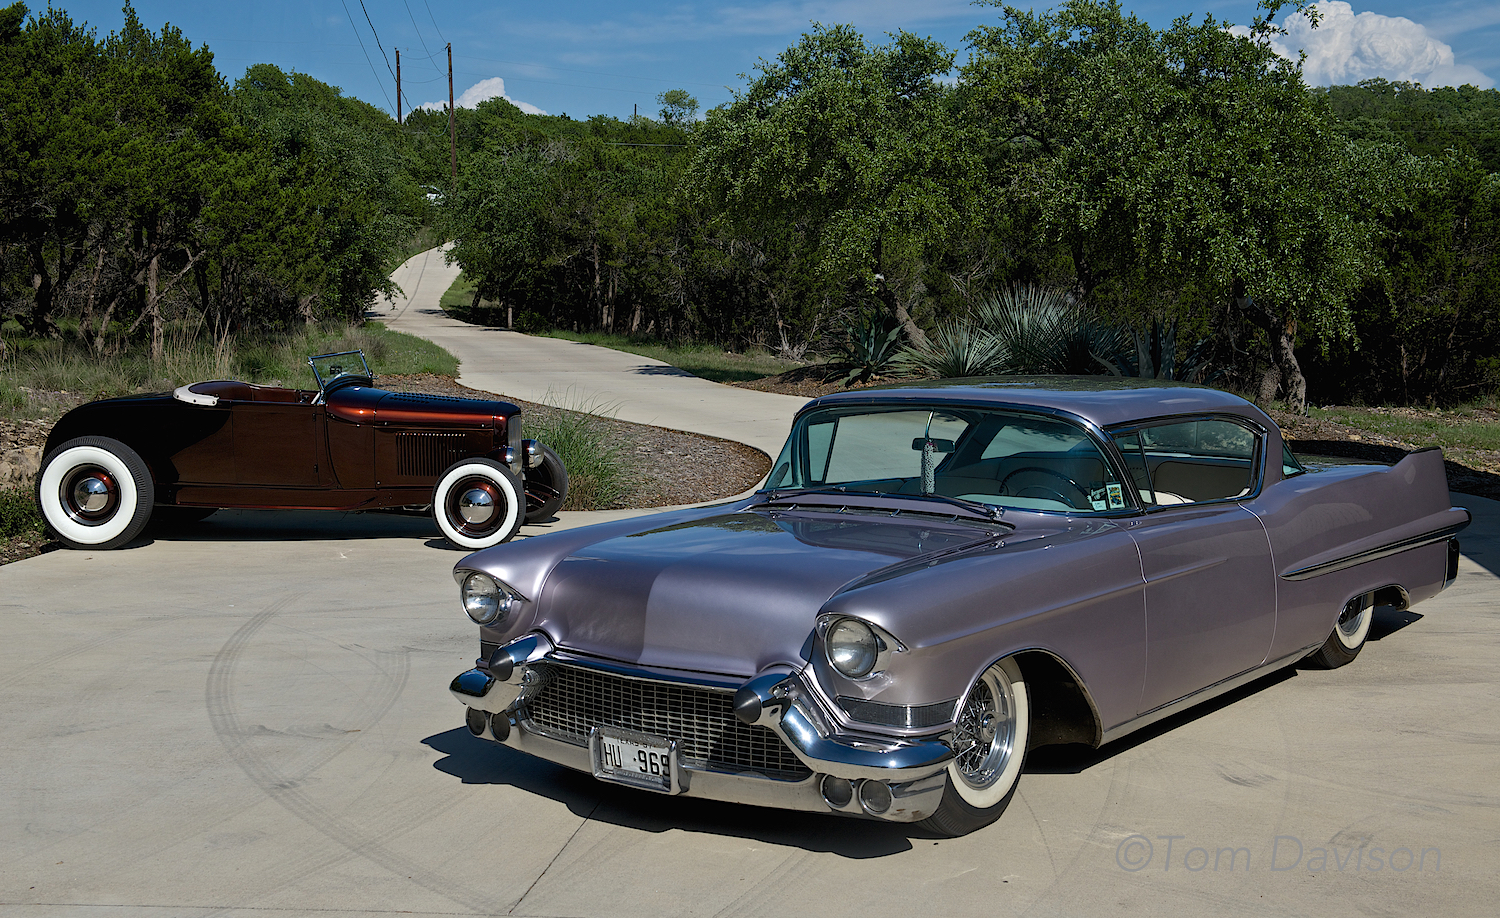 The back car is a 1931 Ford roadster and the front car is a 1957 Cadillac, owned by Steve the show's promoter.